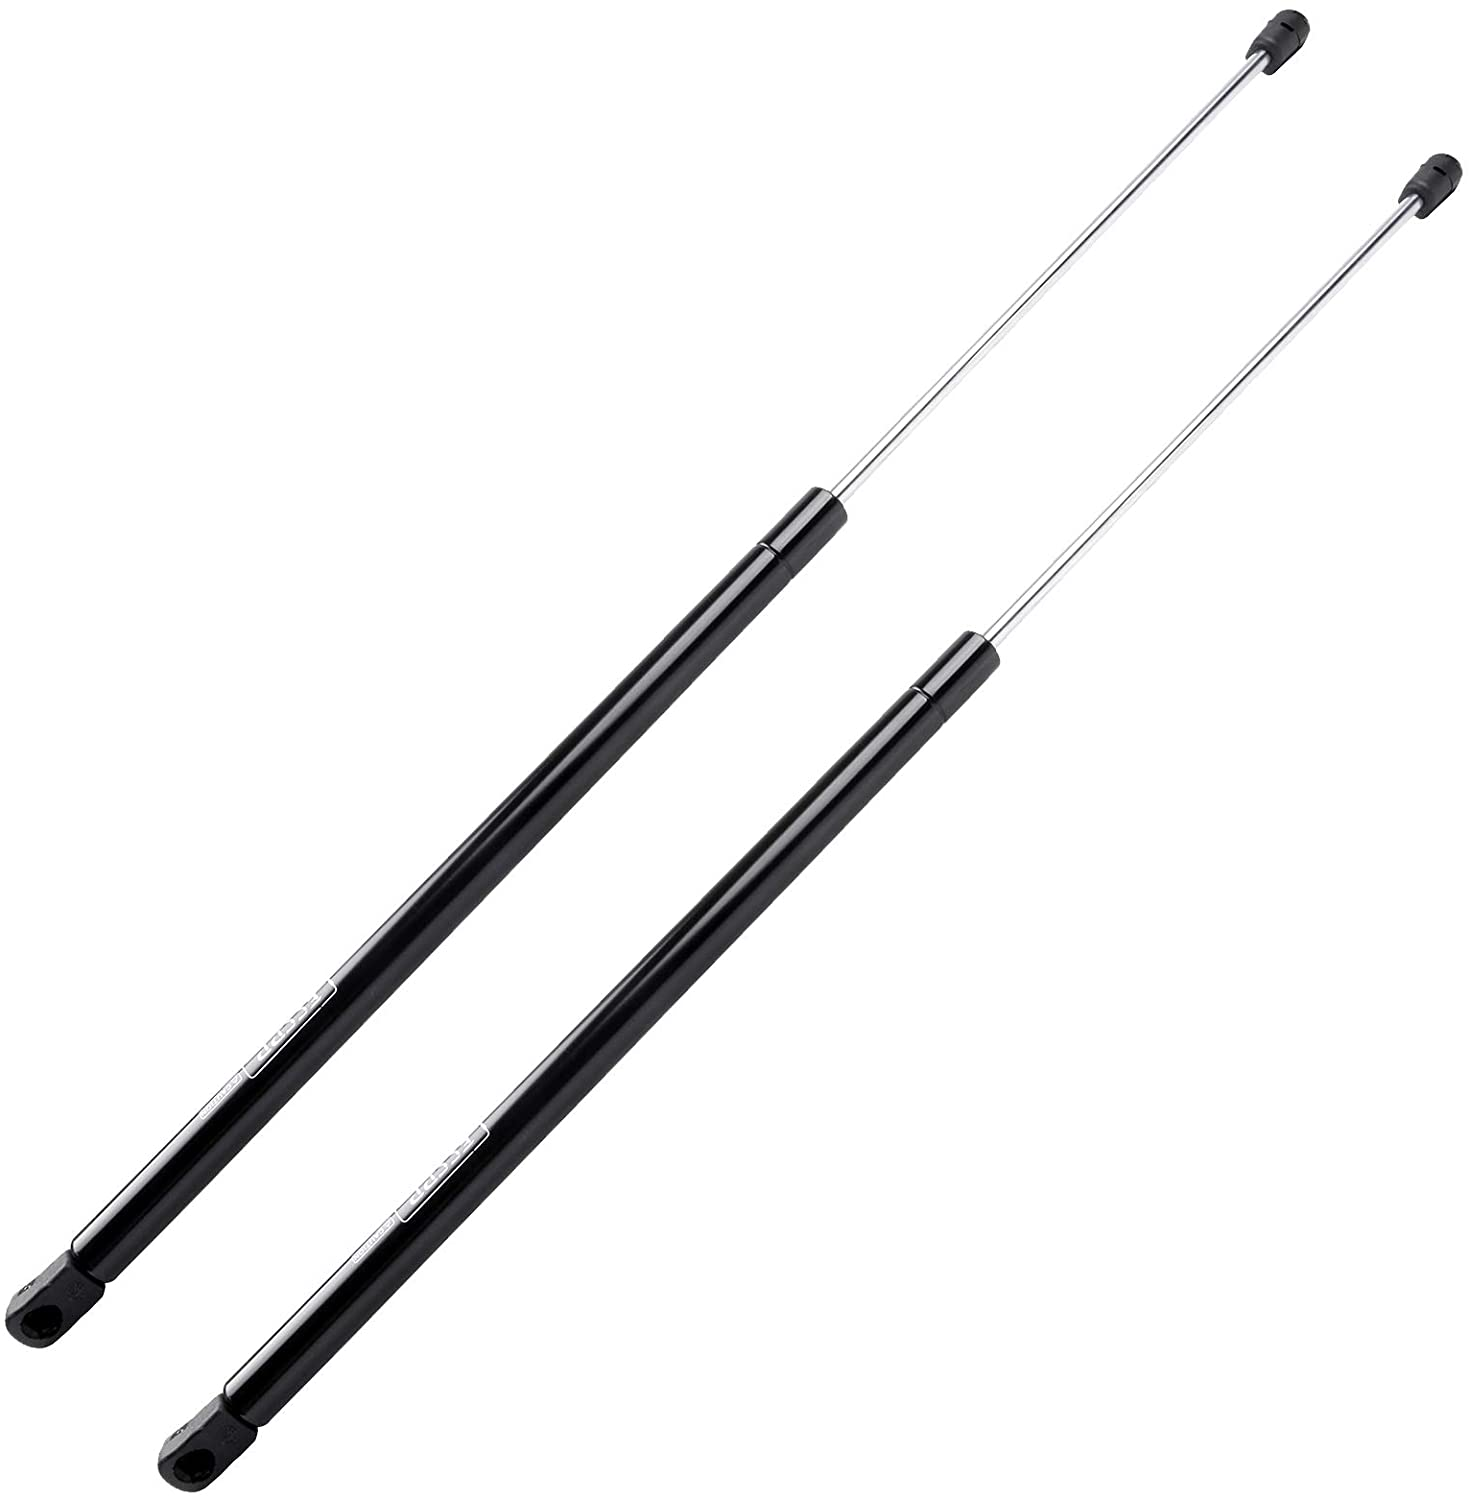 ANGLEWIDE Lift Supports Hood Gas Struts Fit For 2016-2013 Toyota Avalon 2016-2012 Toyota Camry